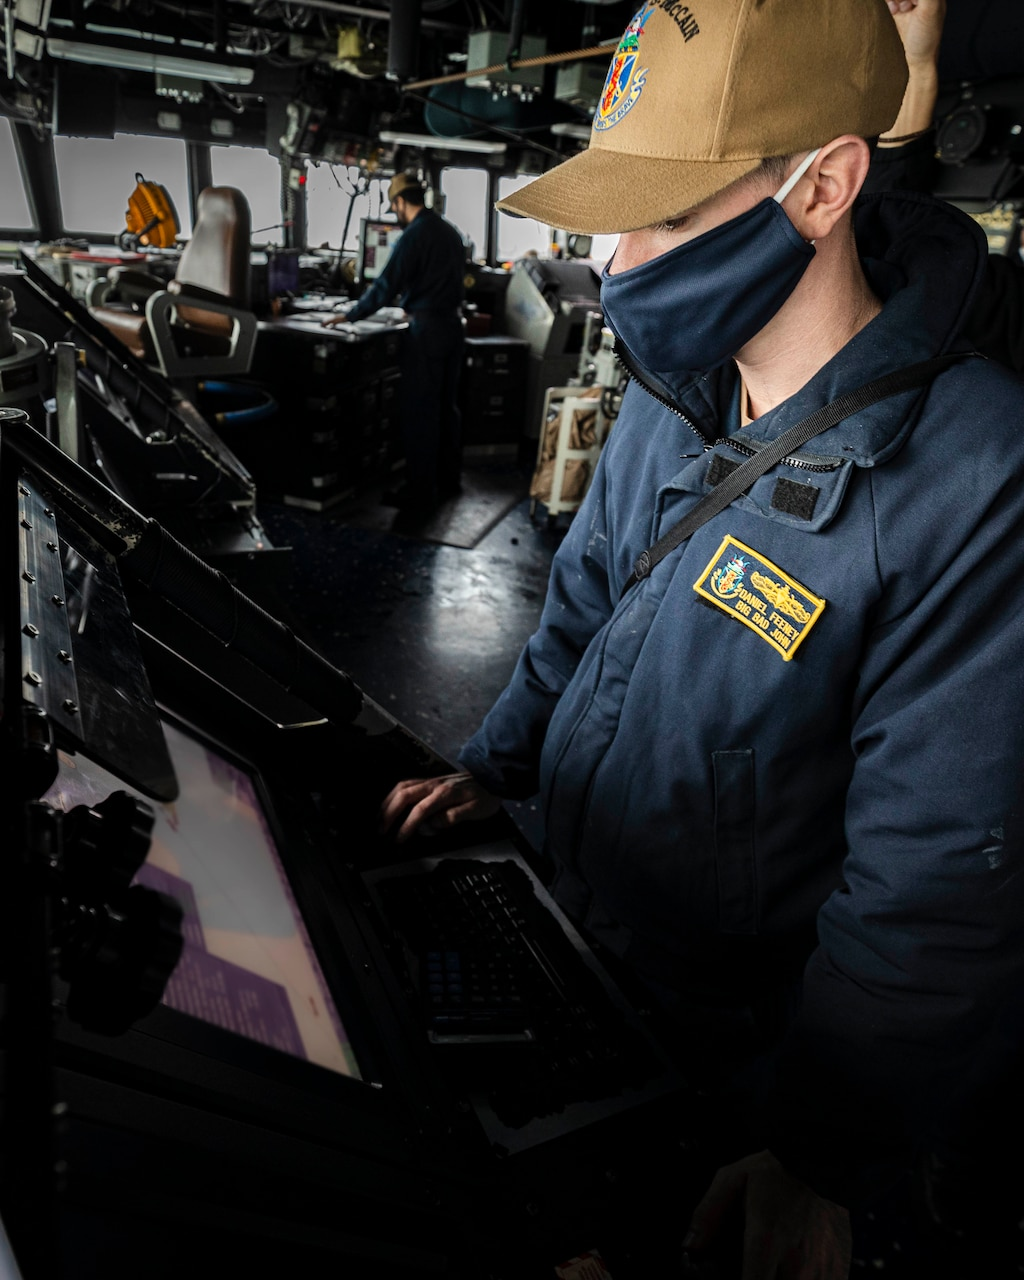 TAIWAN STRAIT (Dec. 30, 2020) Navigator Lt. j.g. Daniel Feeney, from Old Greenwich, monitors the ship's course on the voyage management system (VMS) while standing watch in the pilot house as the guided-missile destroyer USS John S. McCain (DDG 56) conducts routine underway operations in support of stability and security for a free and open Indo-Pacific.